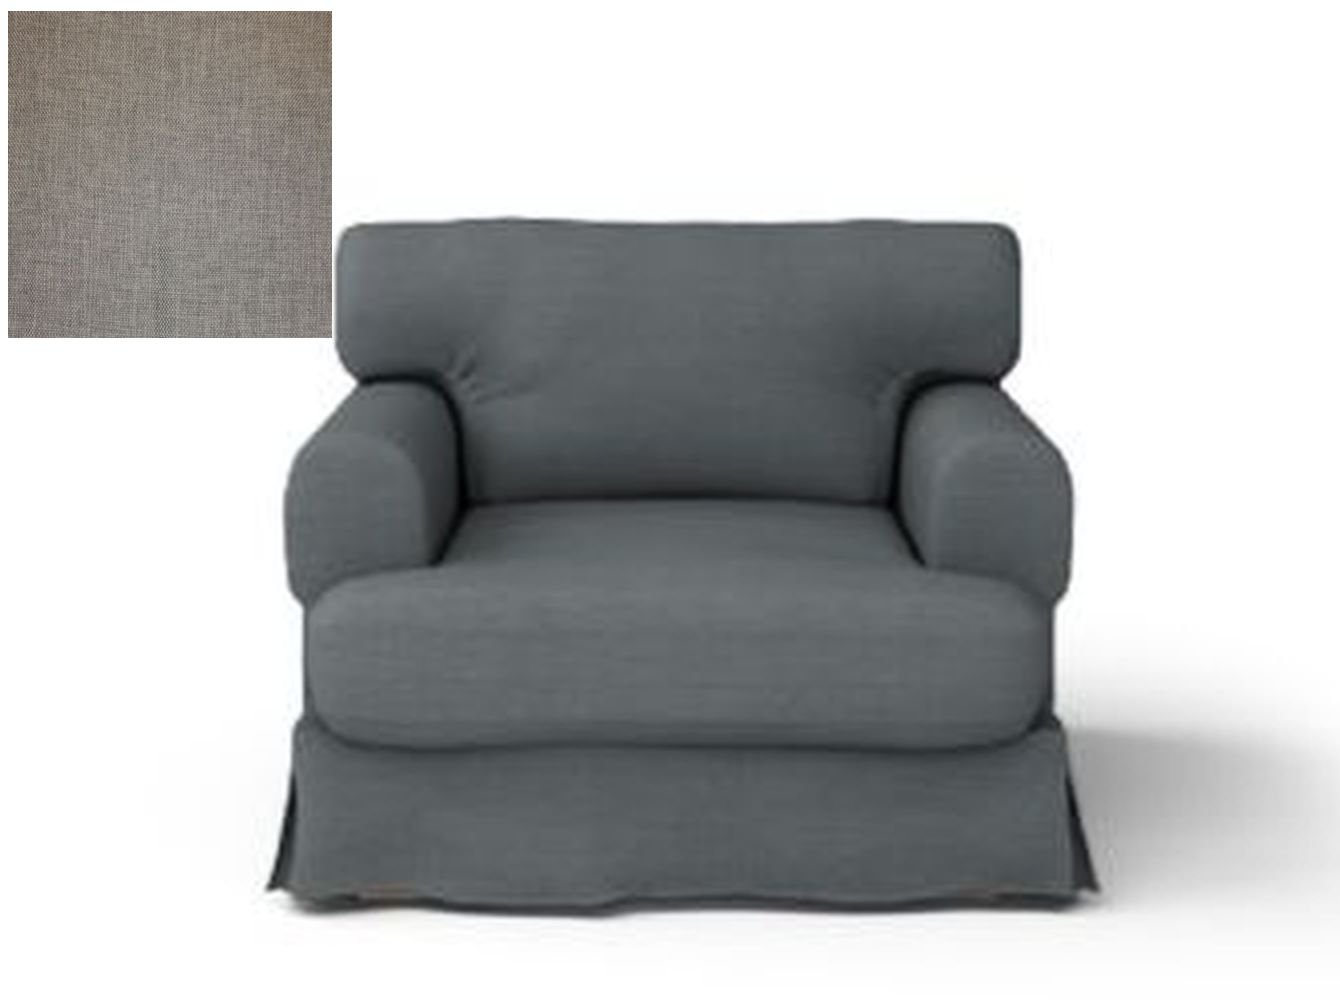 IKEA HOV�S Hovas Armchair SLIPCOVER Chair Cover HJULSBRO GRAY Grey